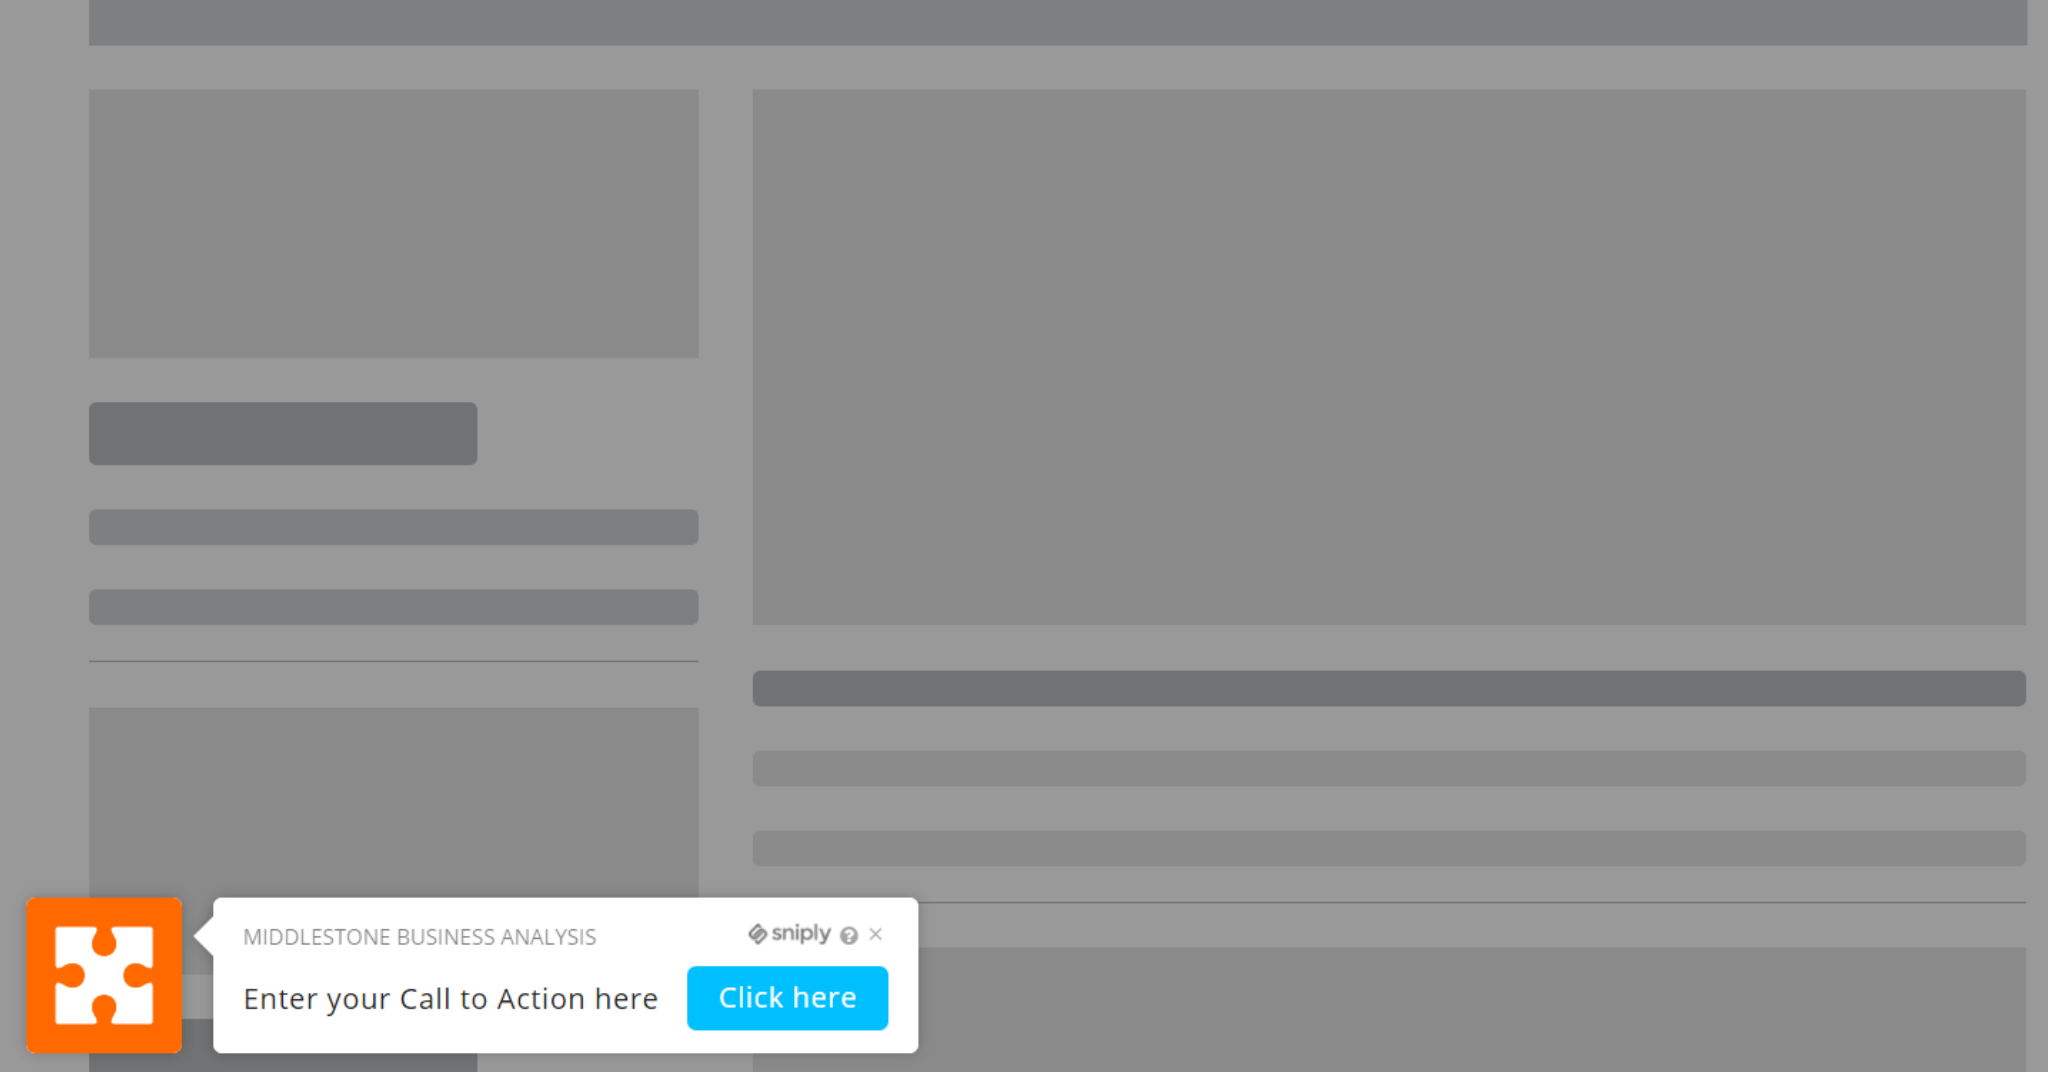 Automatically add a Call-to-Action to every social media post